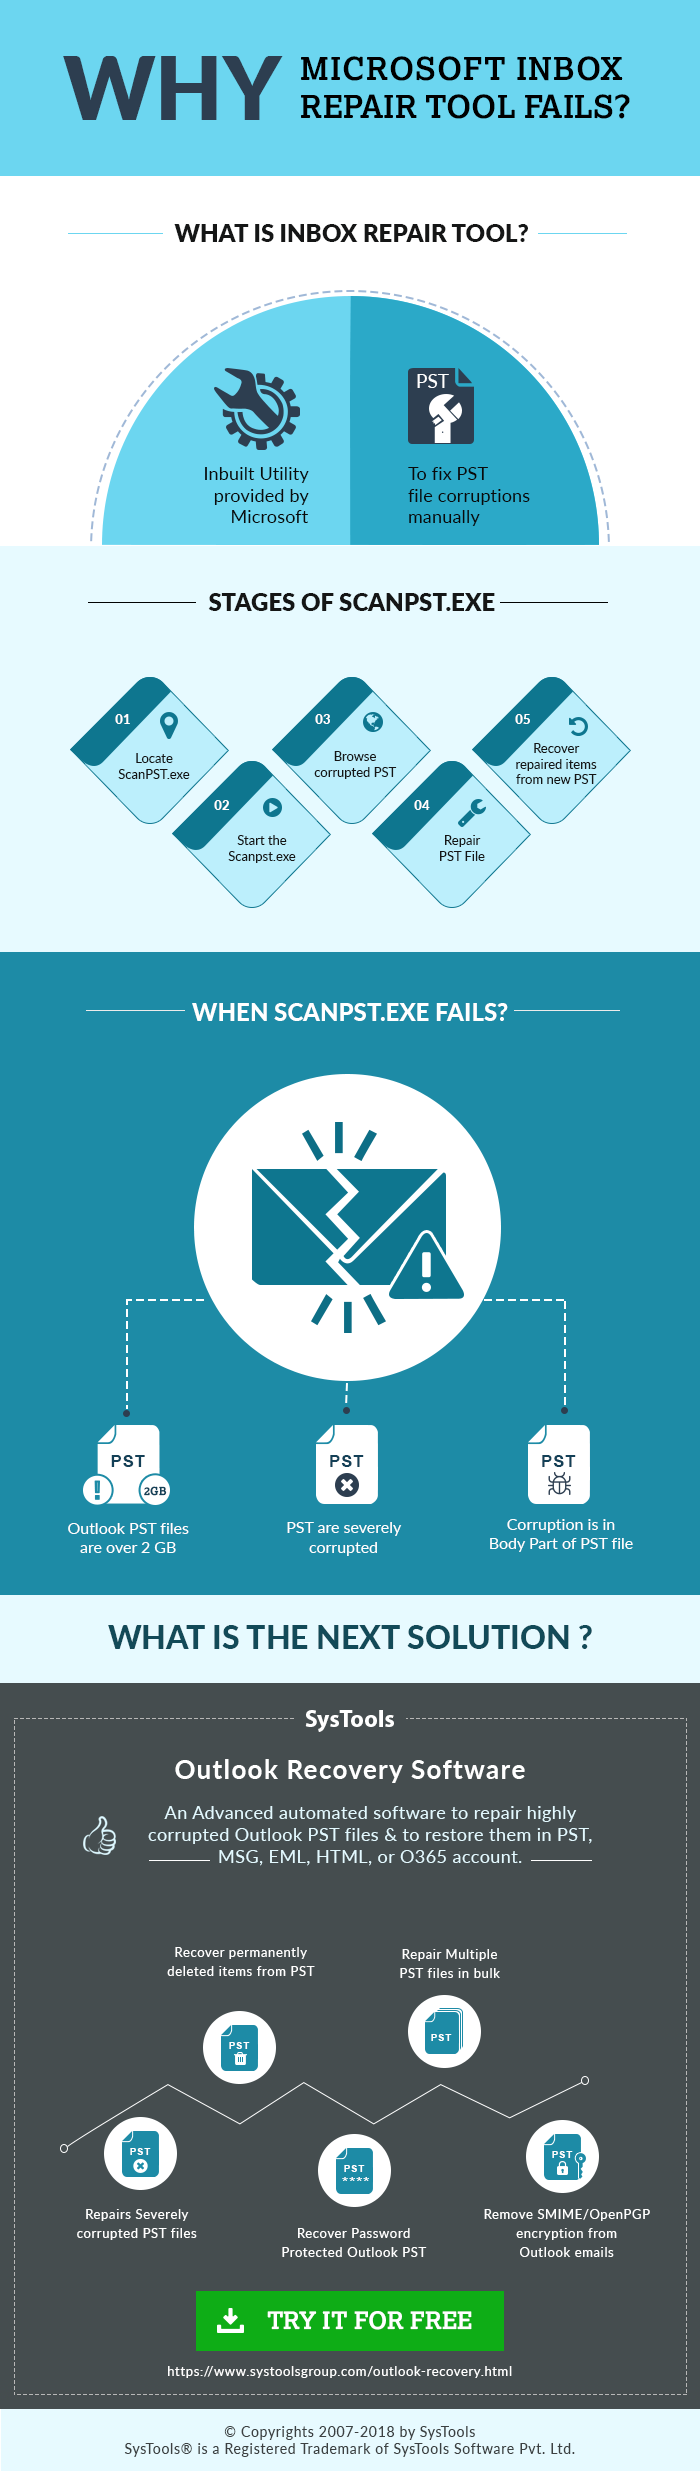 What To Do If Scanpst Fails